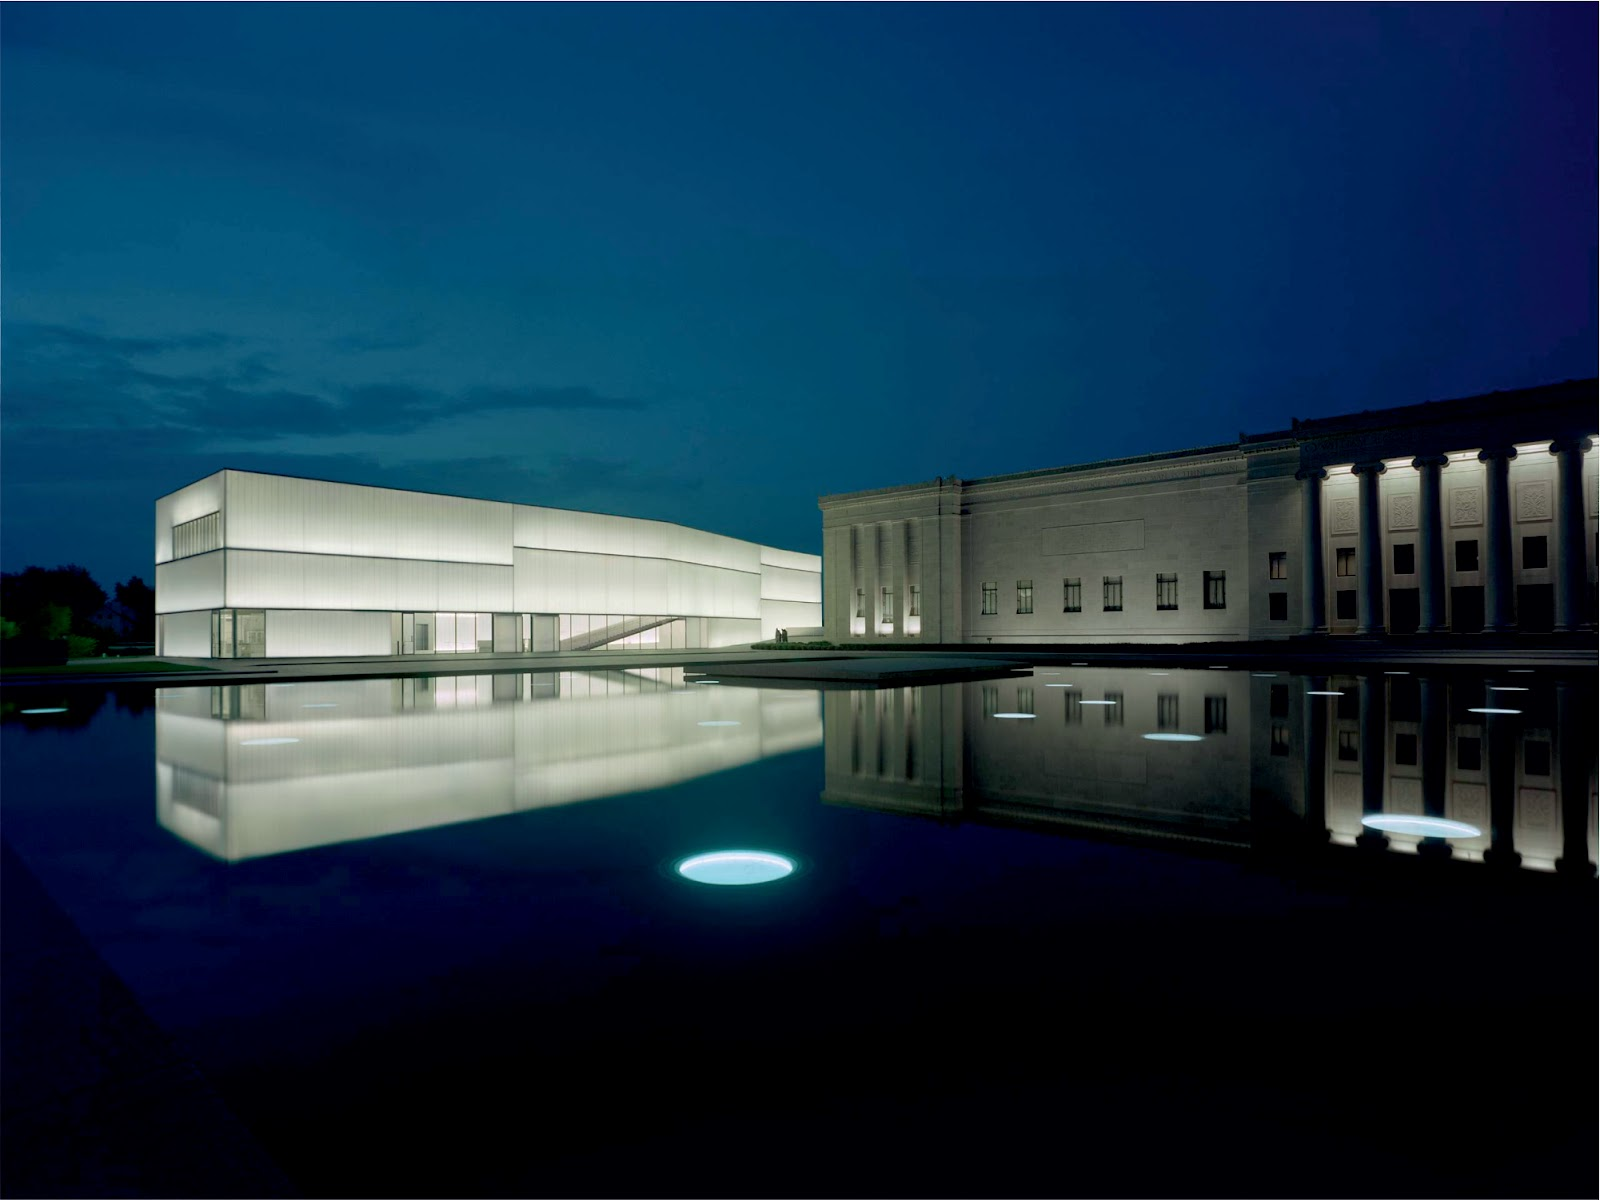 Nelson atkins museum of art by steven holl architects for Architecture art